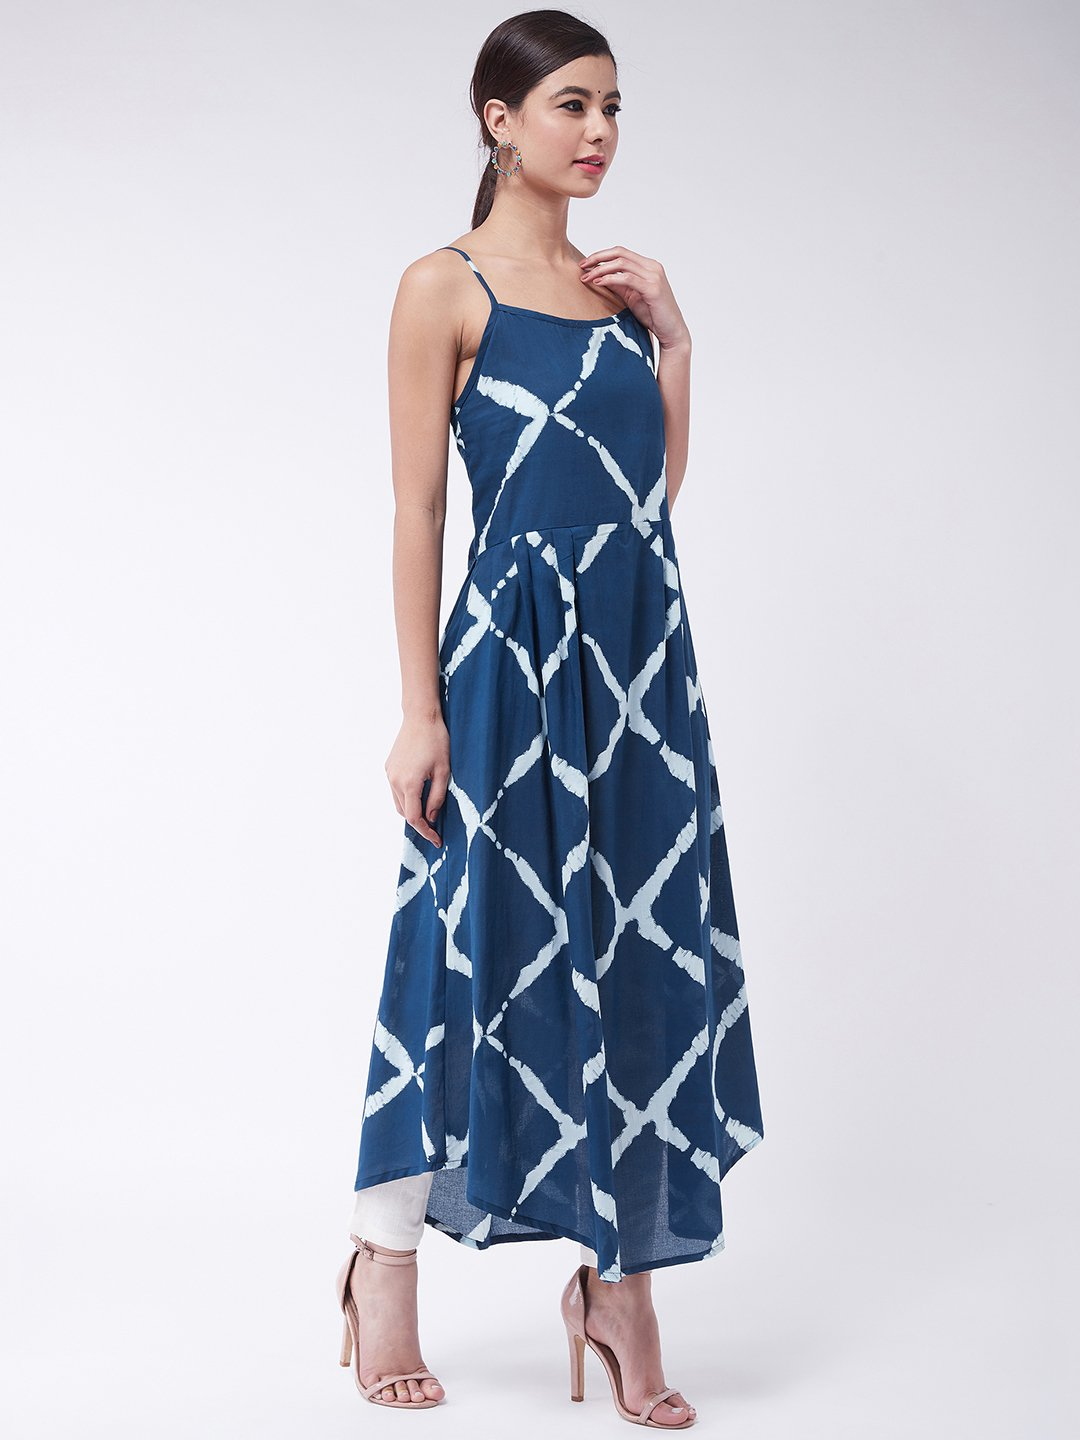 Indigo Criss Cross Strappy Kurta